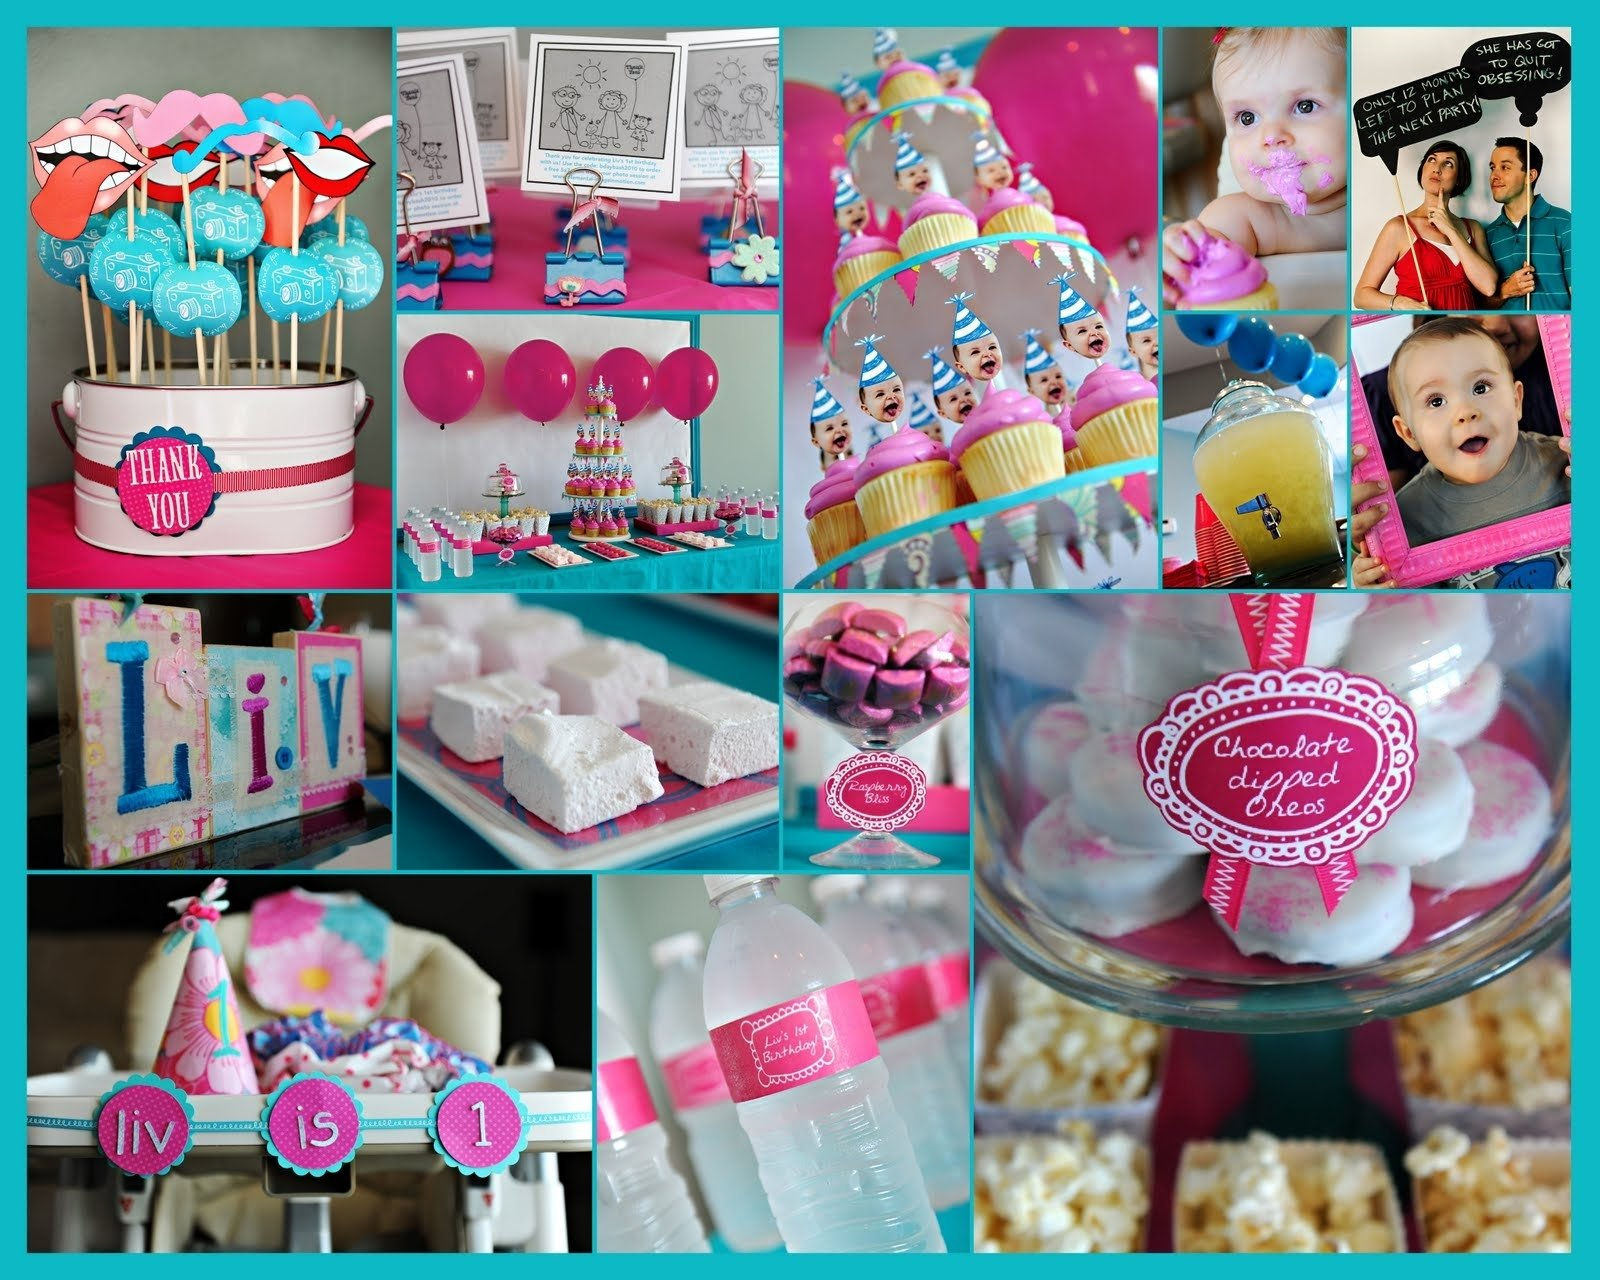 10 Stylish Birthday Ideas For 13 Year Old Girl elle belle creative one year old in a flash a first birthday party 29 2020